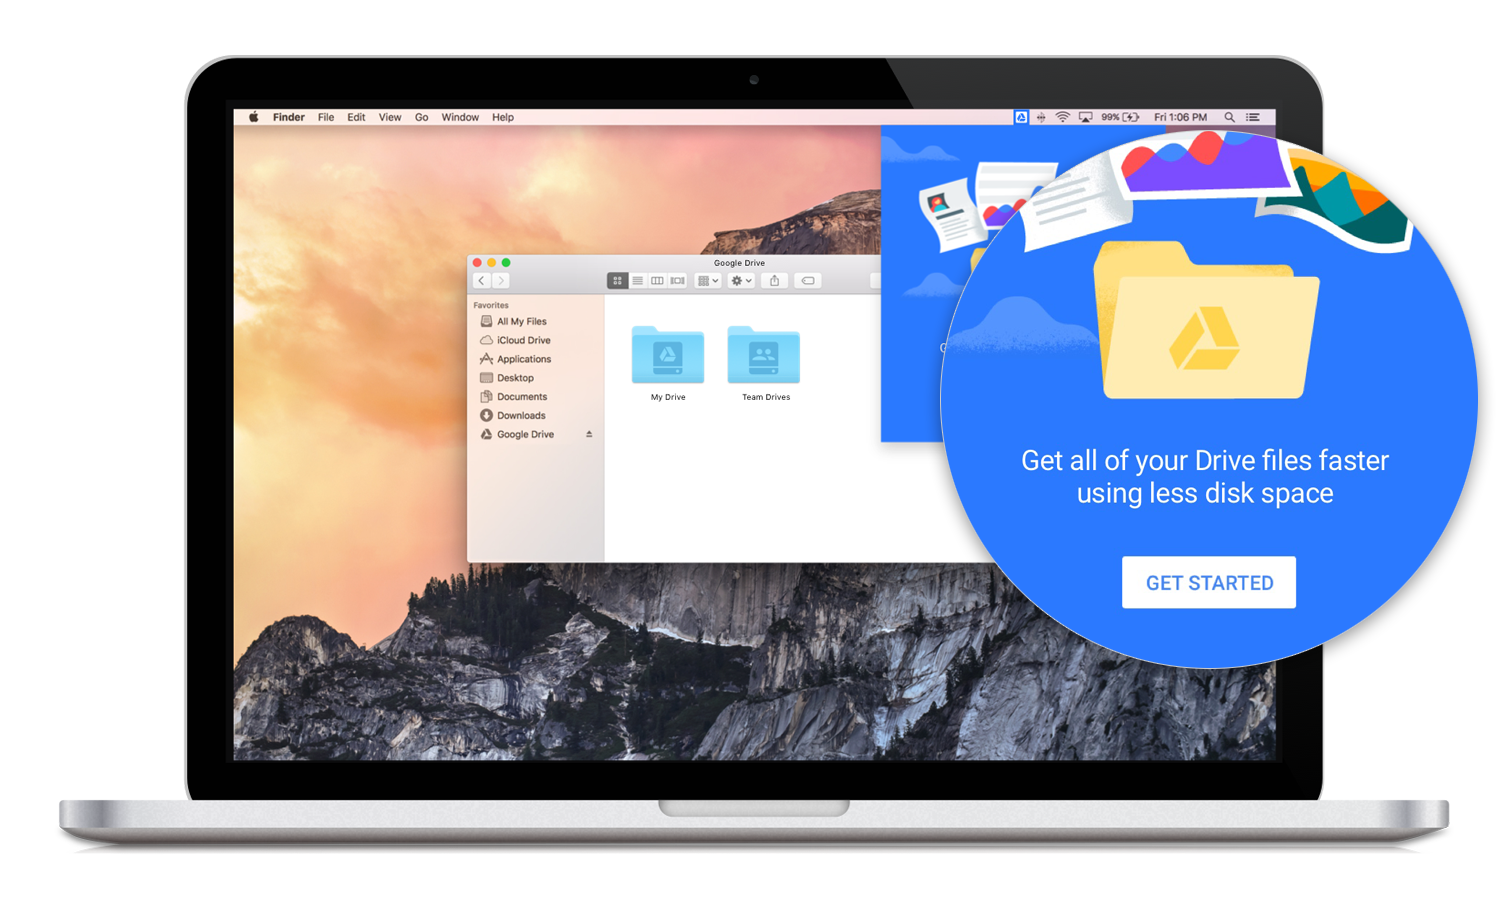 Drive File Stream for G Suite lets you access all your files